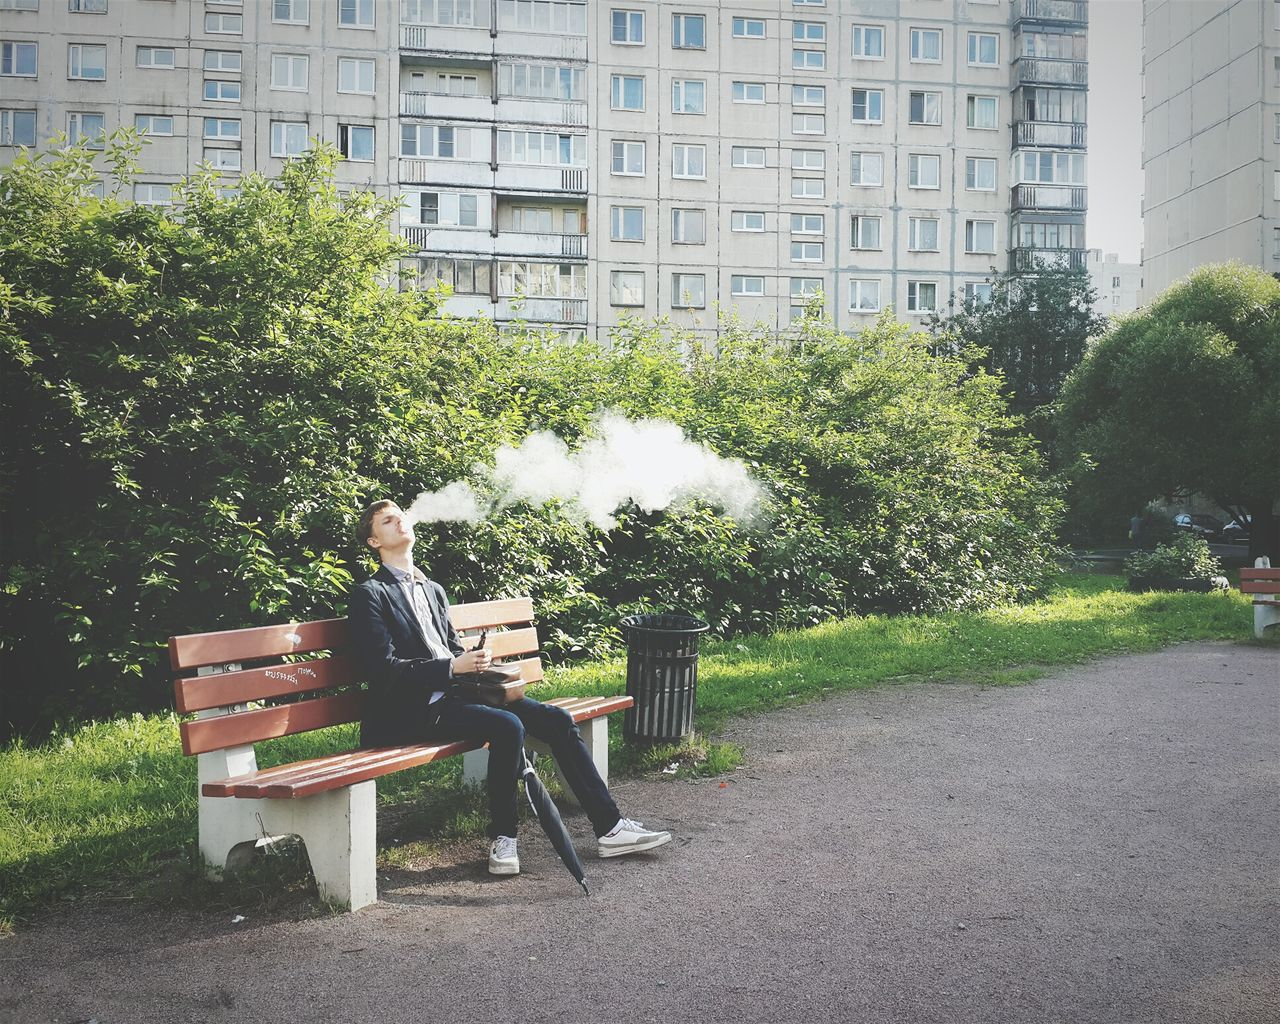 Beautiful stock photos of cigarette, 18-19 Years, Architecture, Bench, Building Exterior